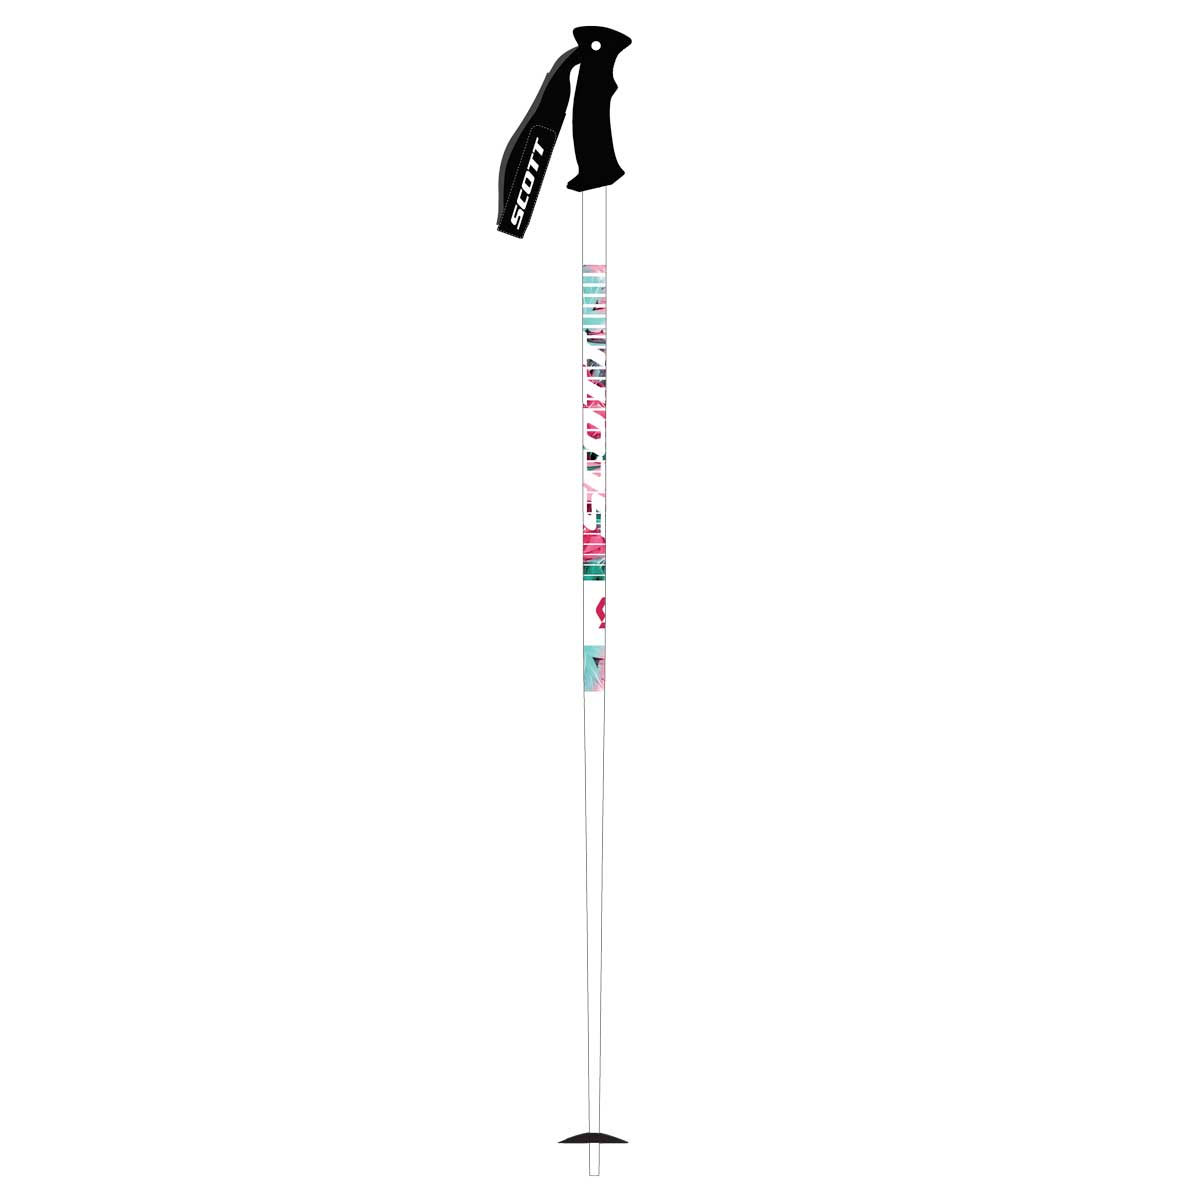 scott kids hero jr ski pole in white and pink